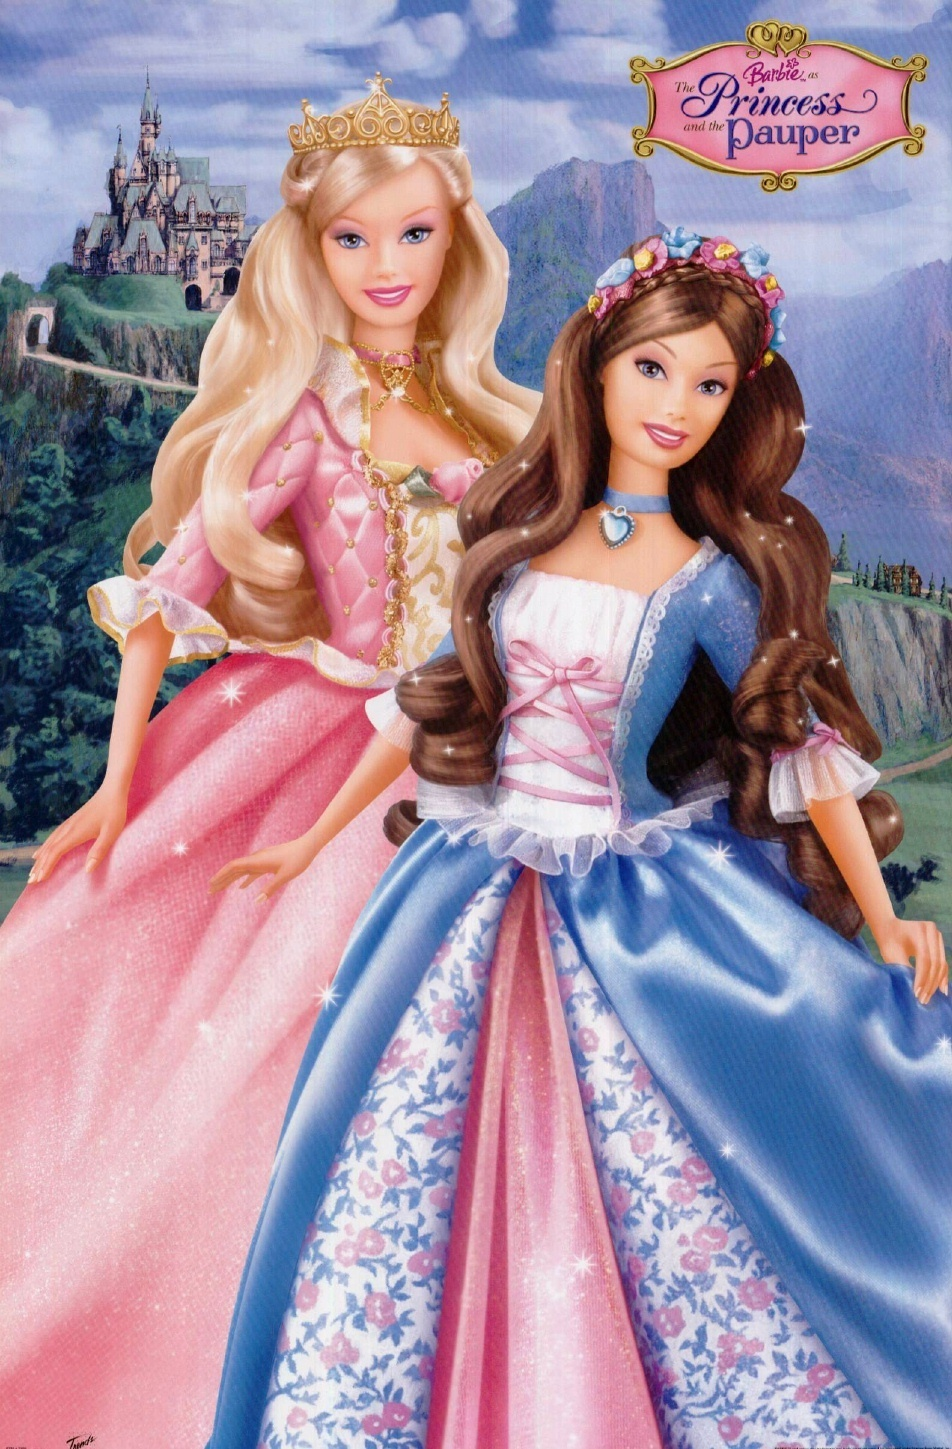 Barbie Princess And The Pauper Images Barbie Princess And Princess Pauper